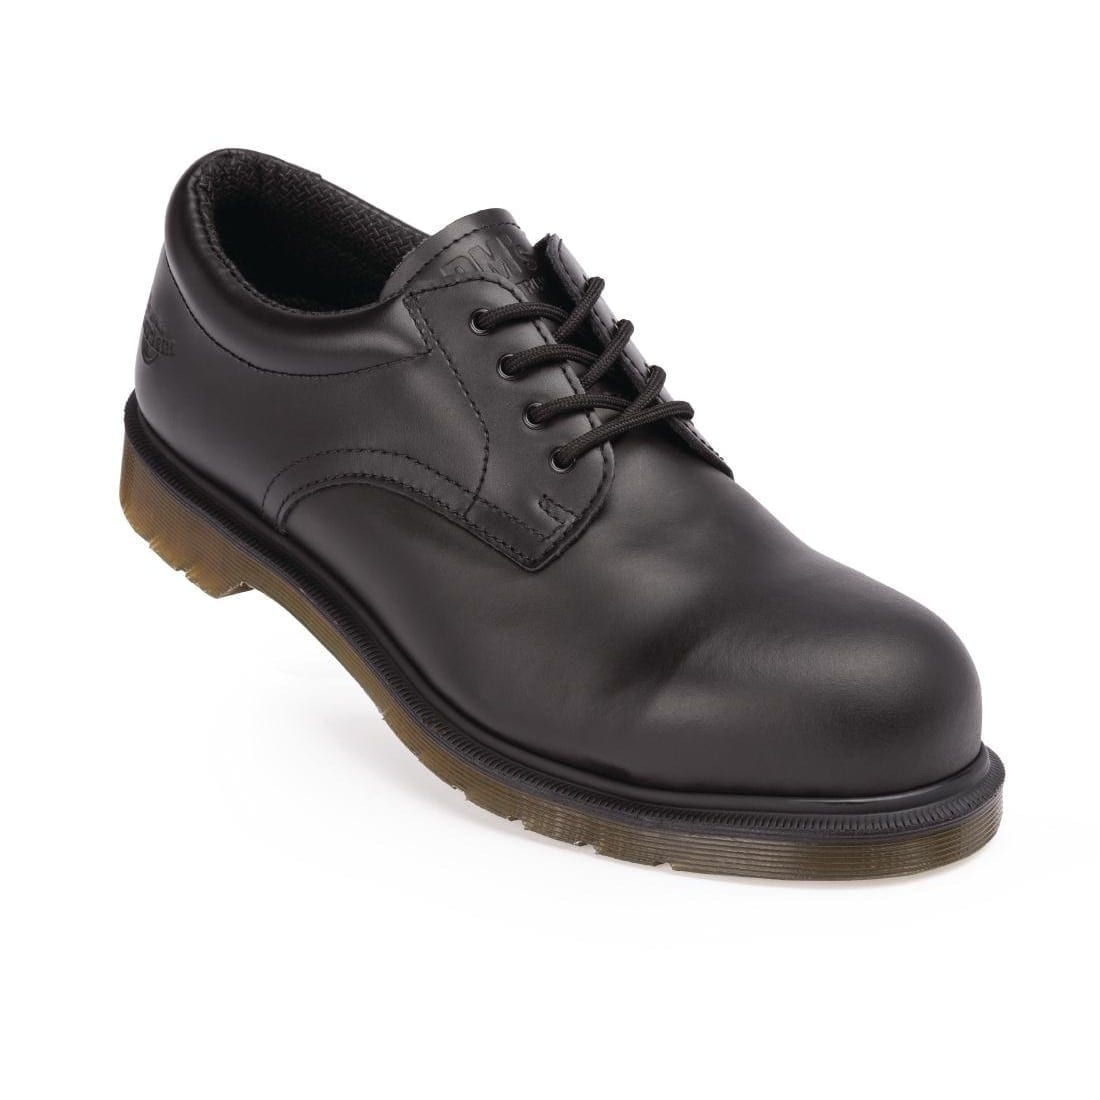 Dr Martens Classic Black Icon Safety Shoe - Size 41-0